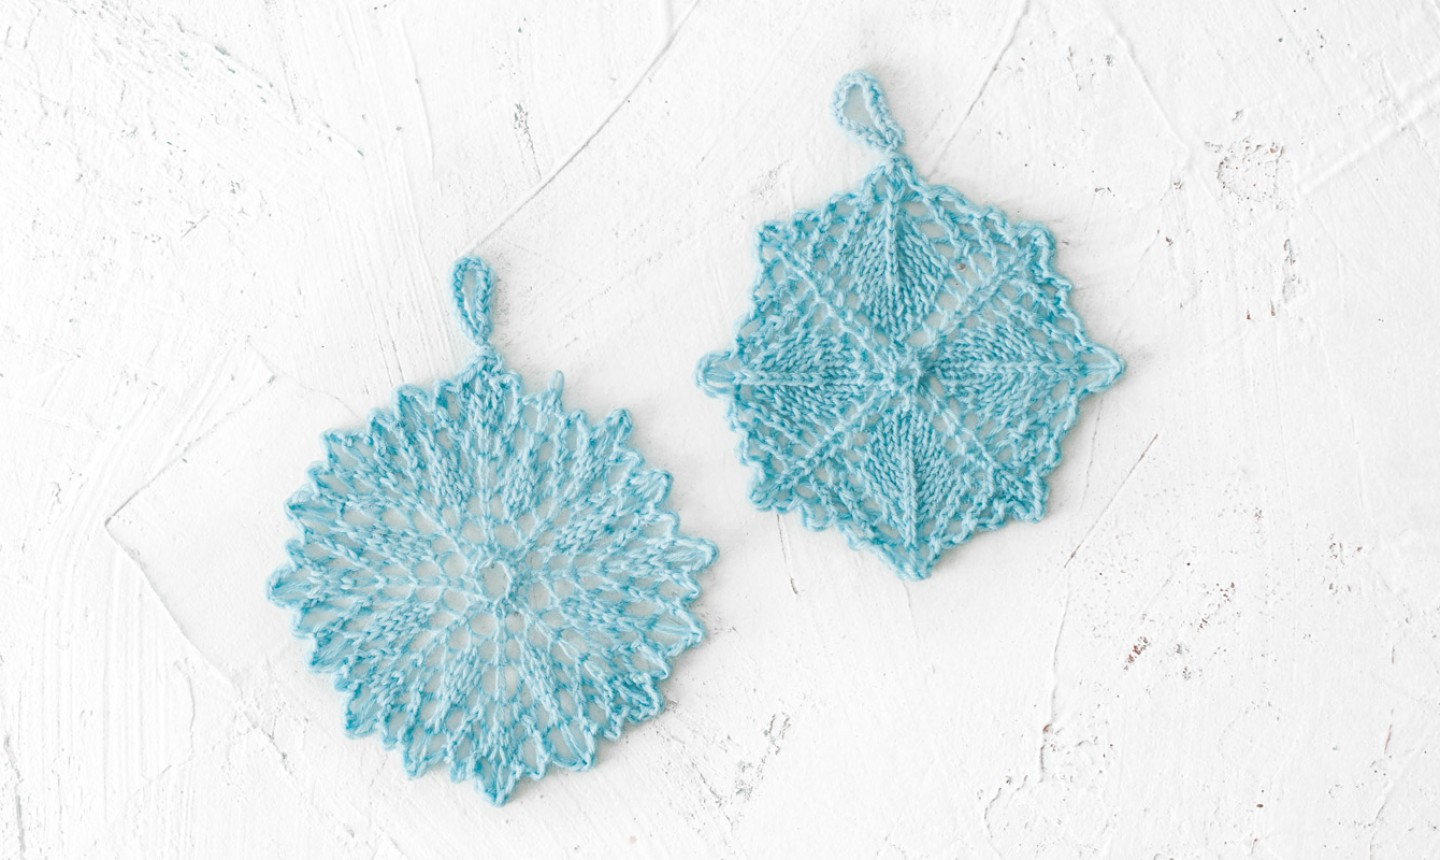 Snowflake Pattern Knitting Let It Snow With Cozy Knit Snowflakes Free Pattern Alert